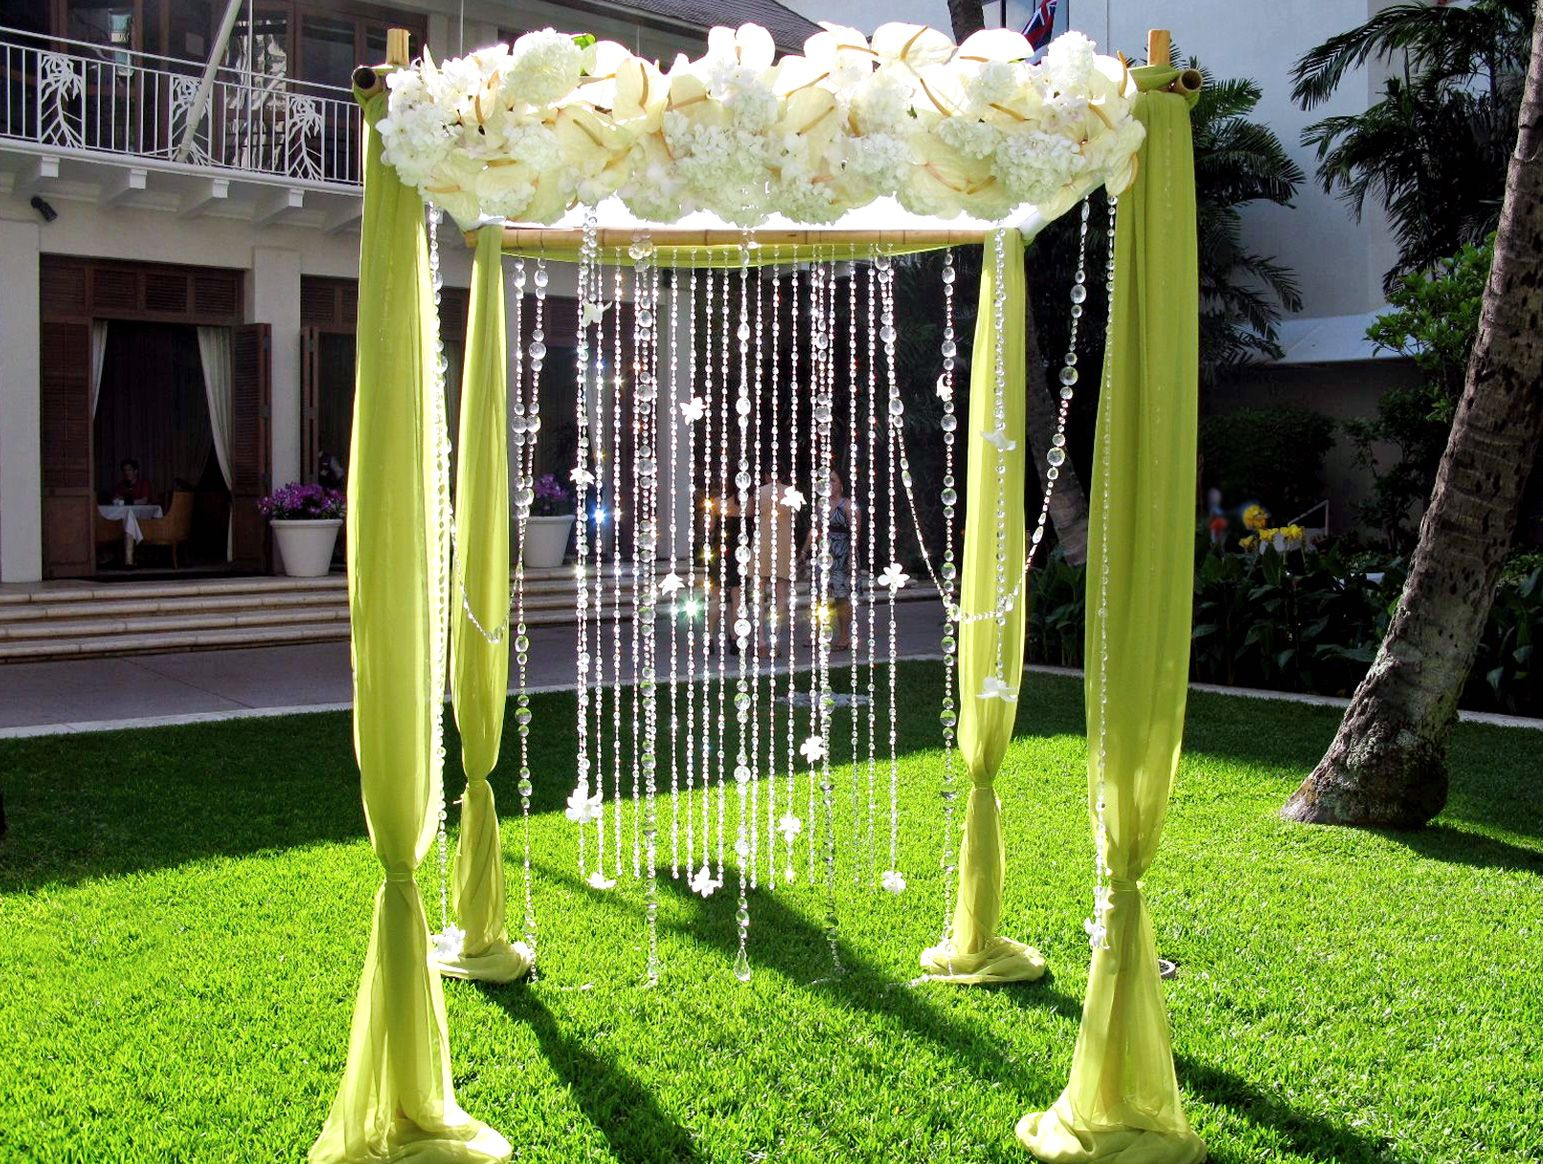 15 Wonderful Wedding Canopy U0026 Arch Ideas   After Decorating The Poles With  Wedding Color Matching